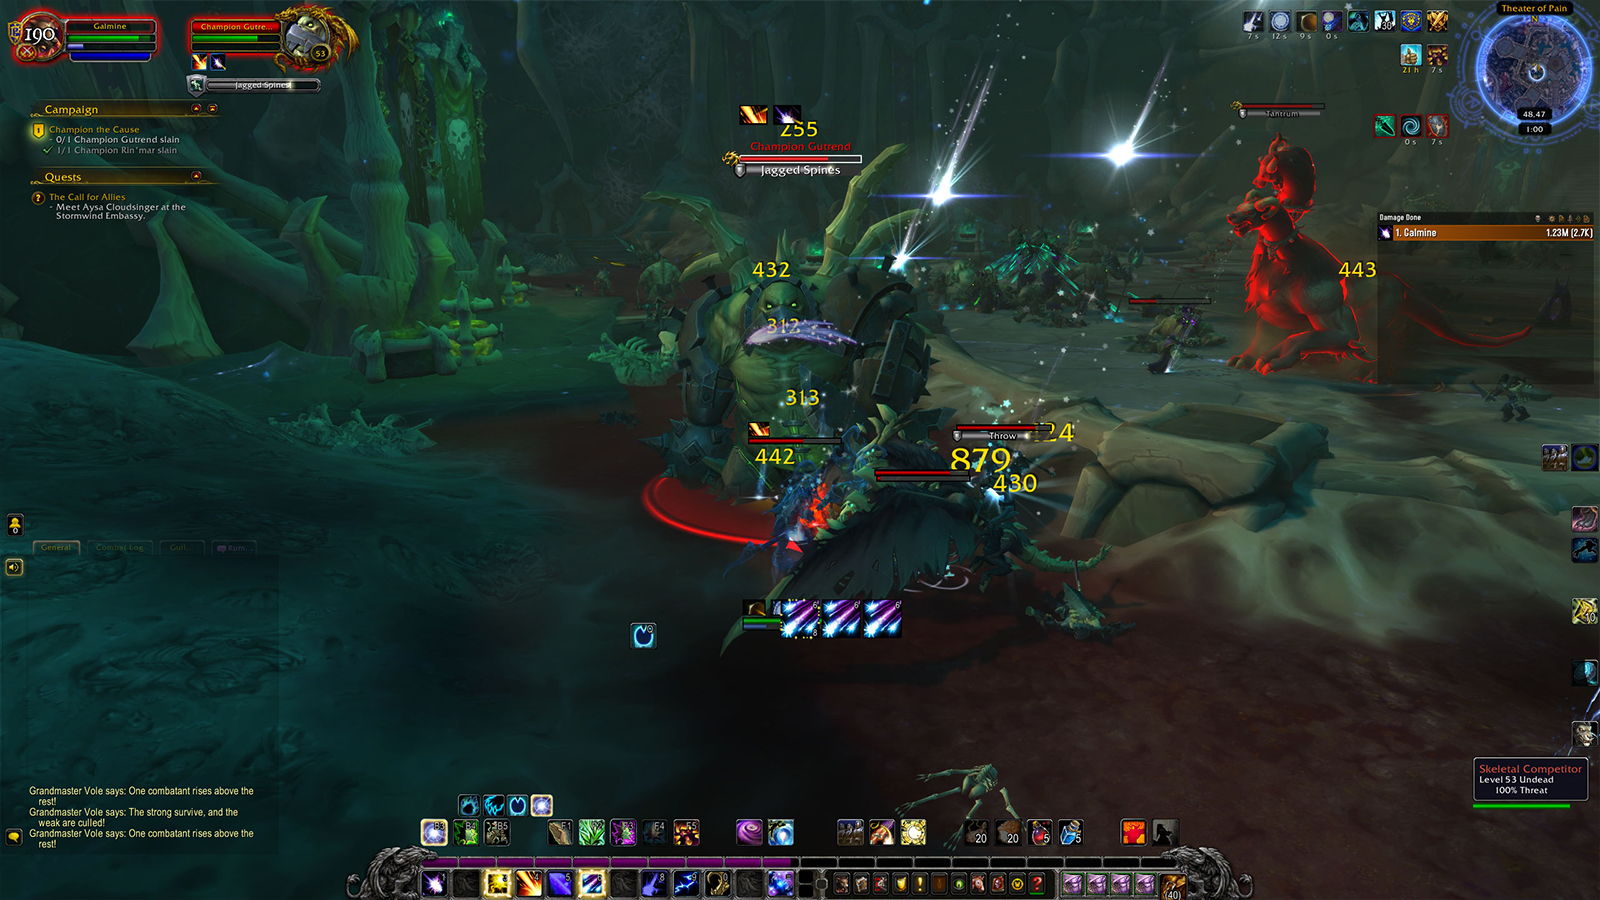 Theater of Pain in Maldraxxus, with lots of enemies on-screen at any one time